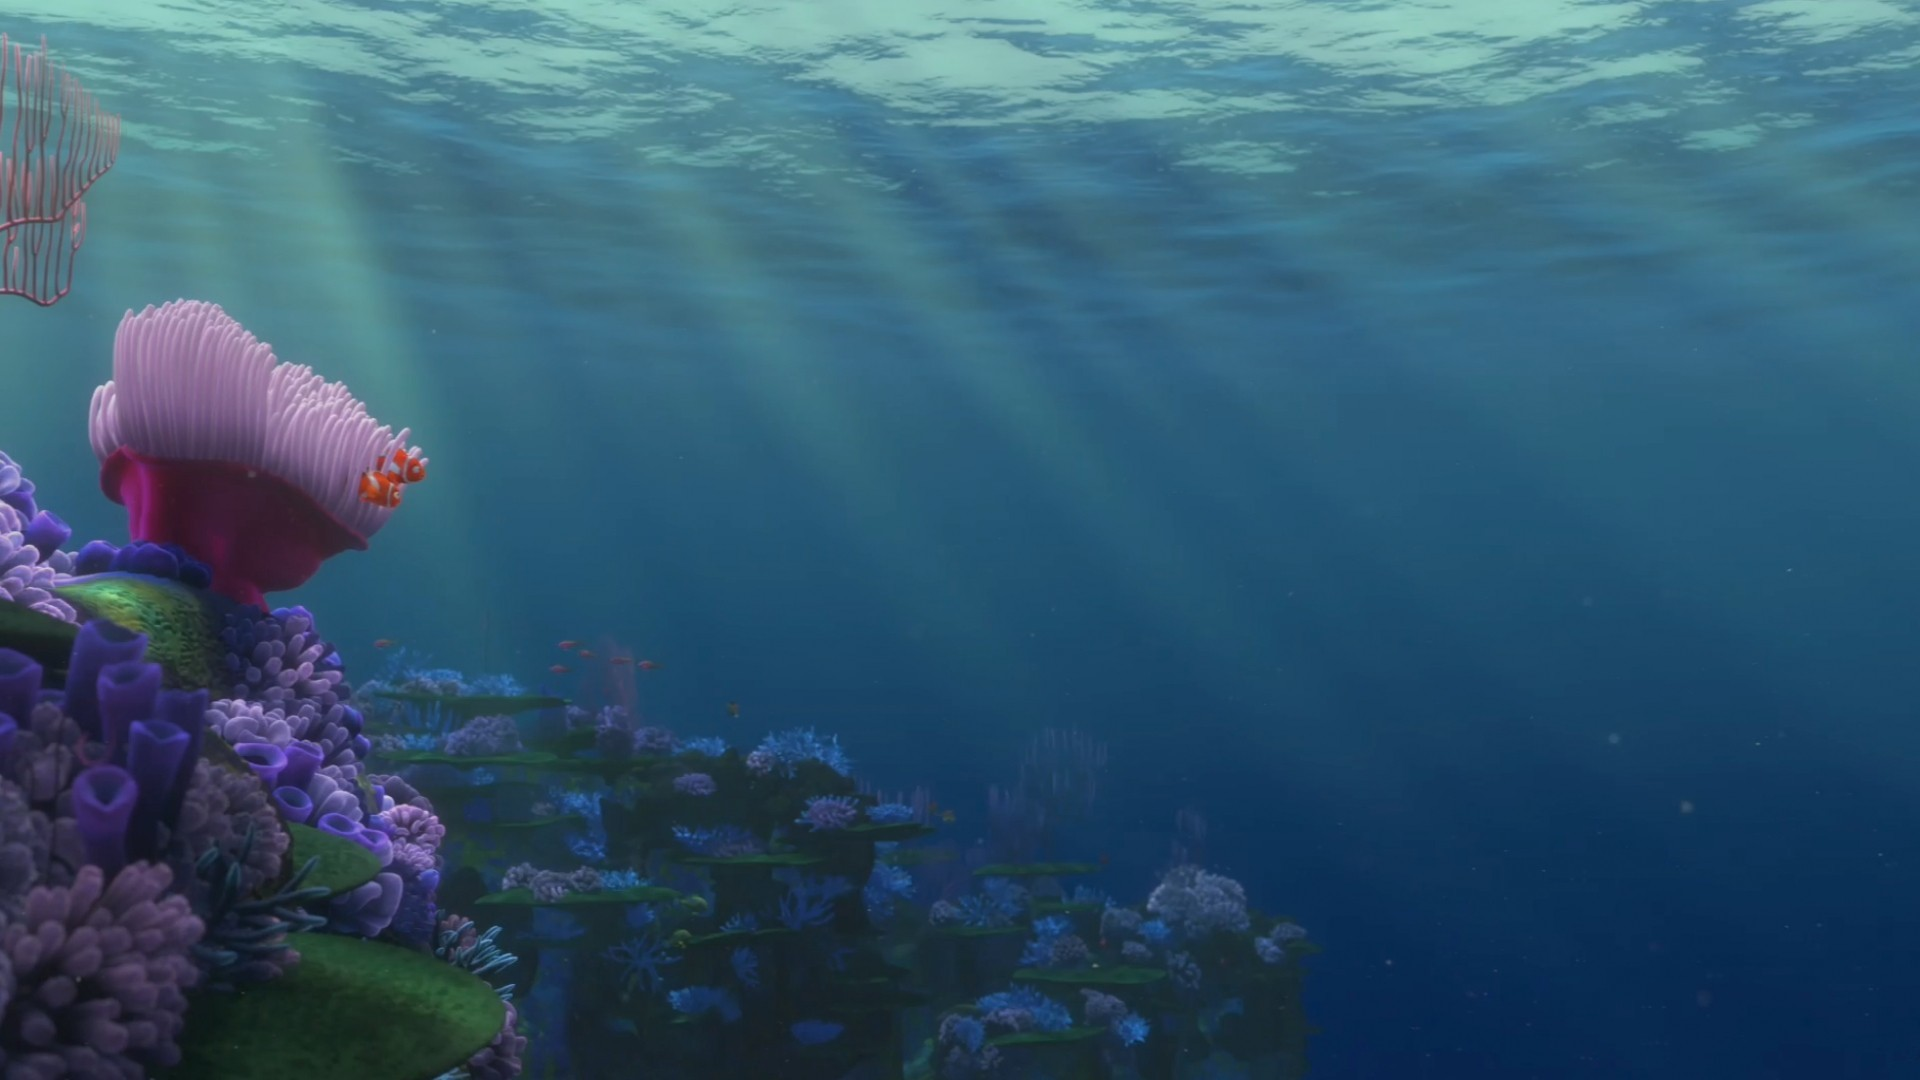 Finding Nemo Backgrounds (59+ Images